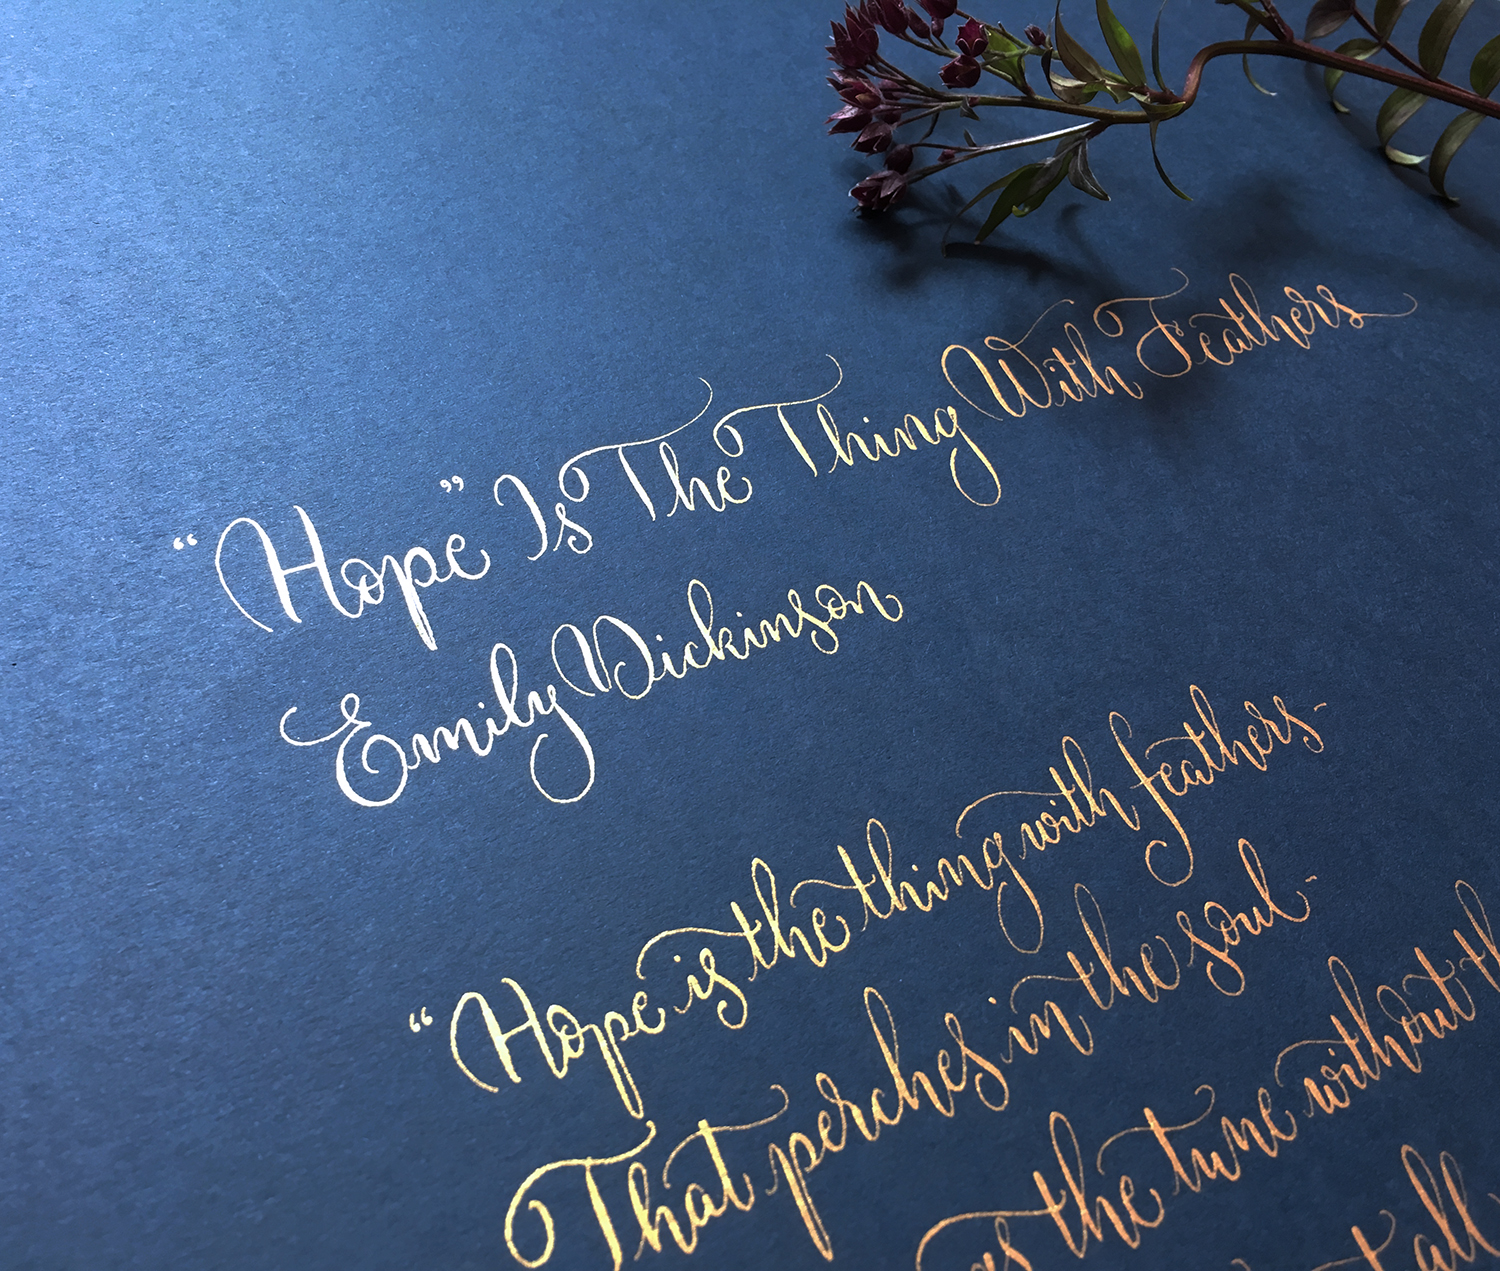 Hope Is The Thing With Feathers – Emily Dickinson